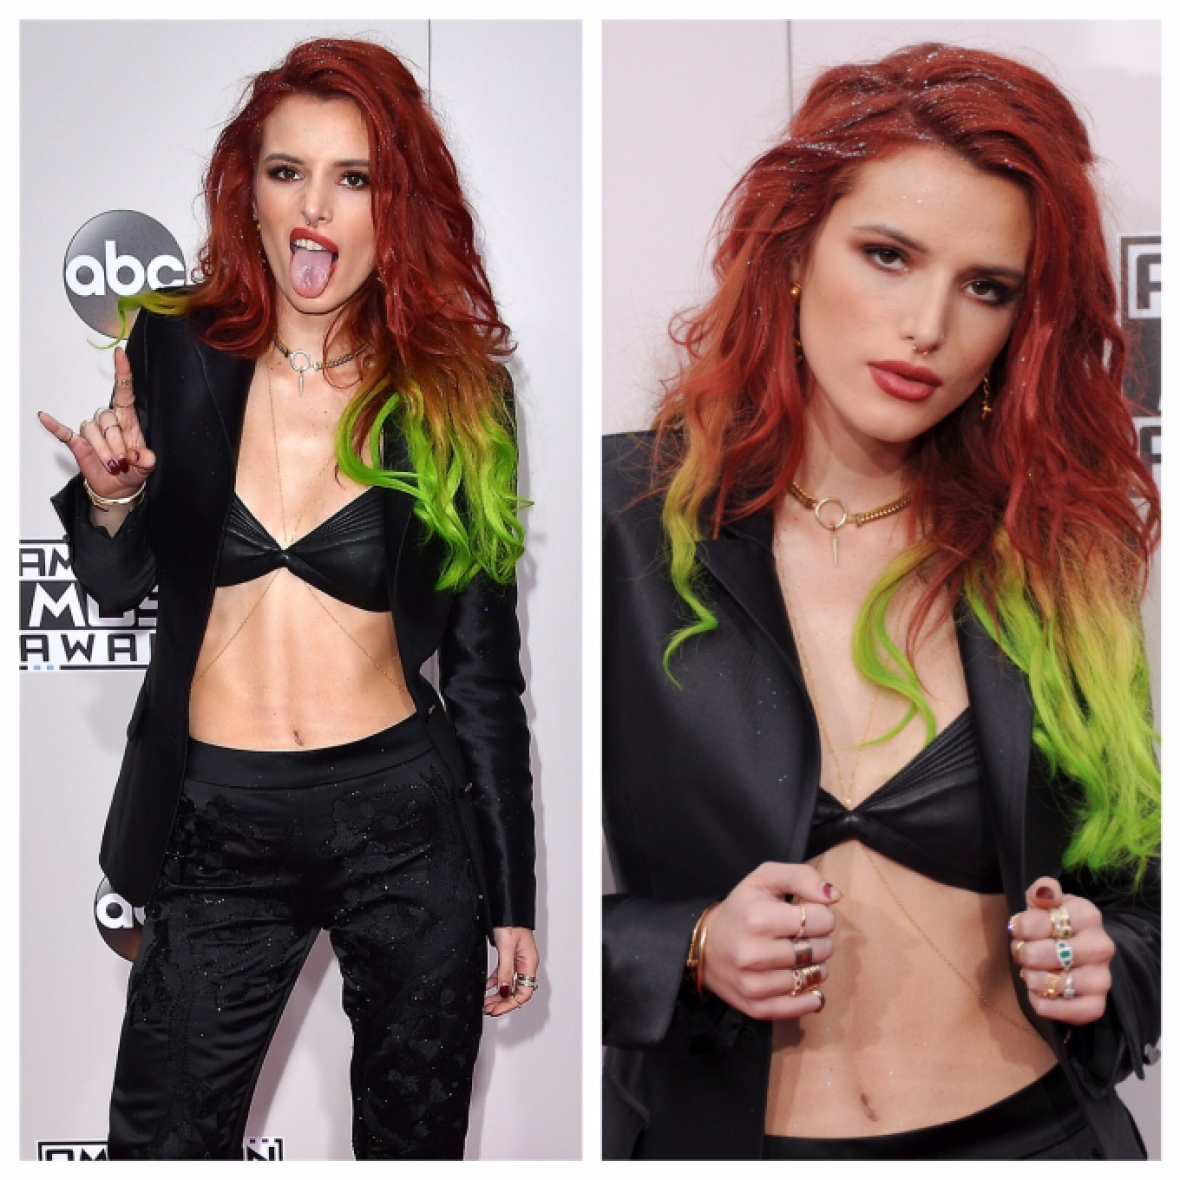 bella thorne getty images